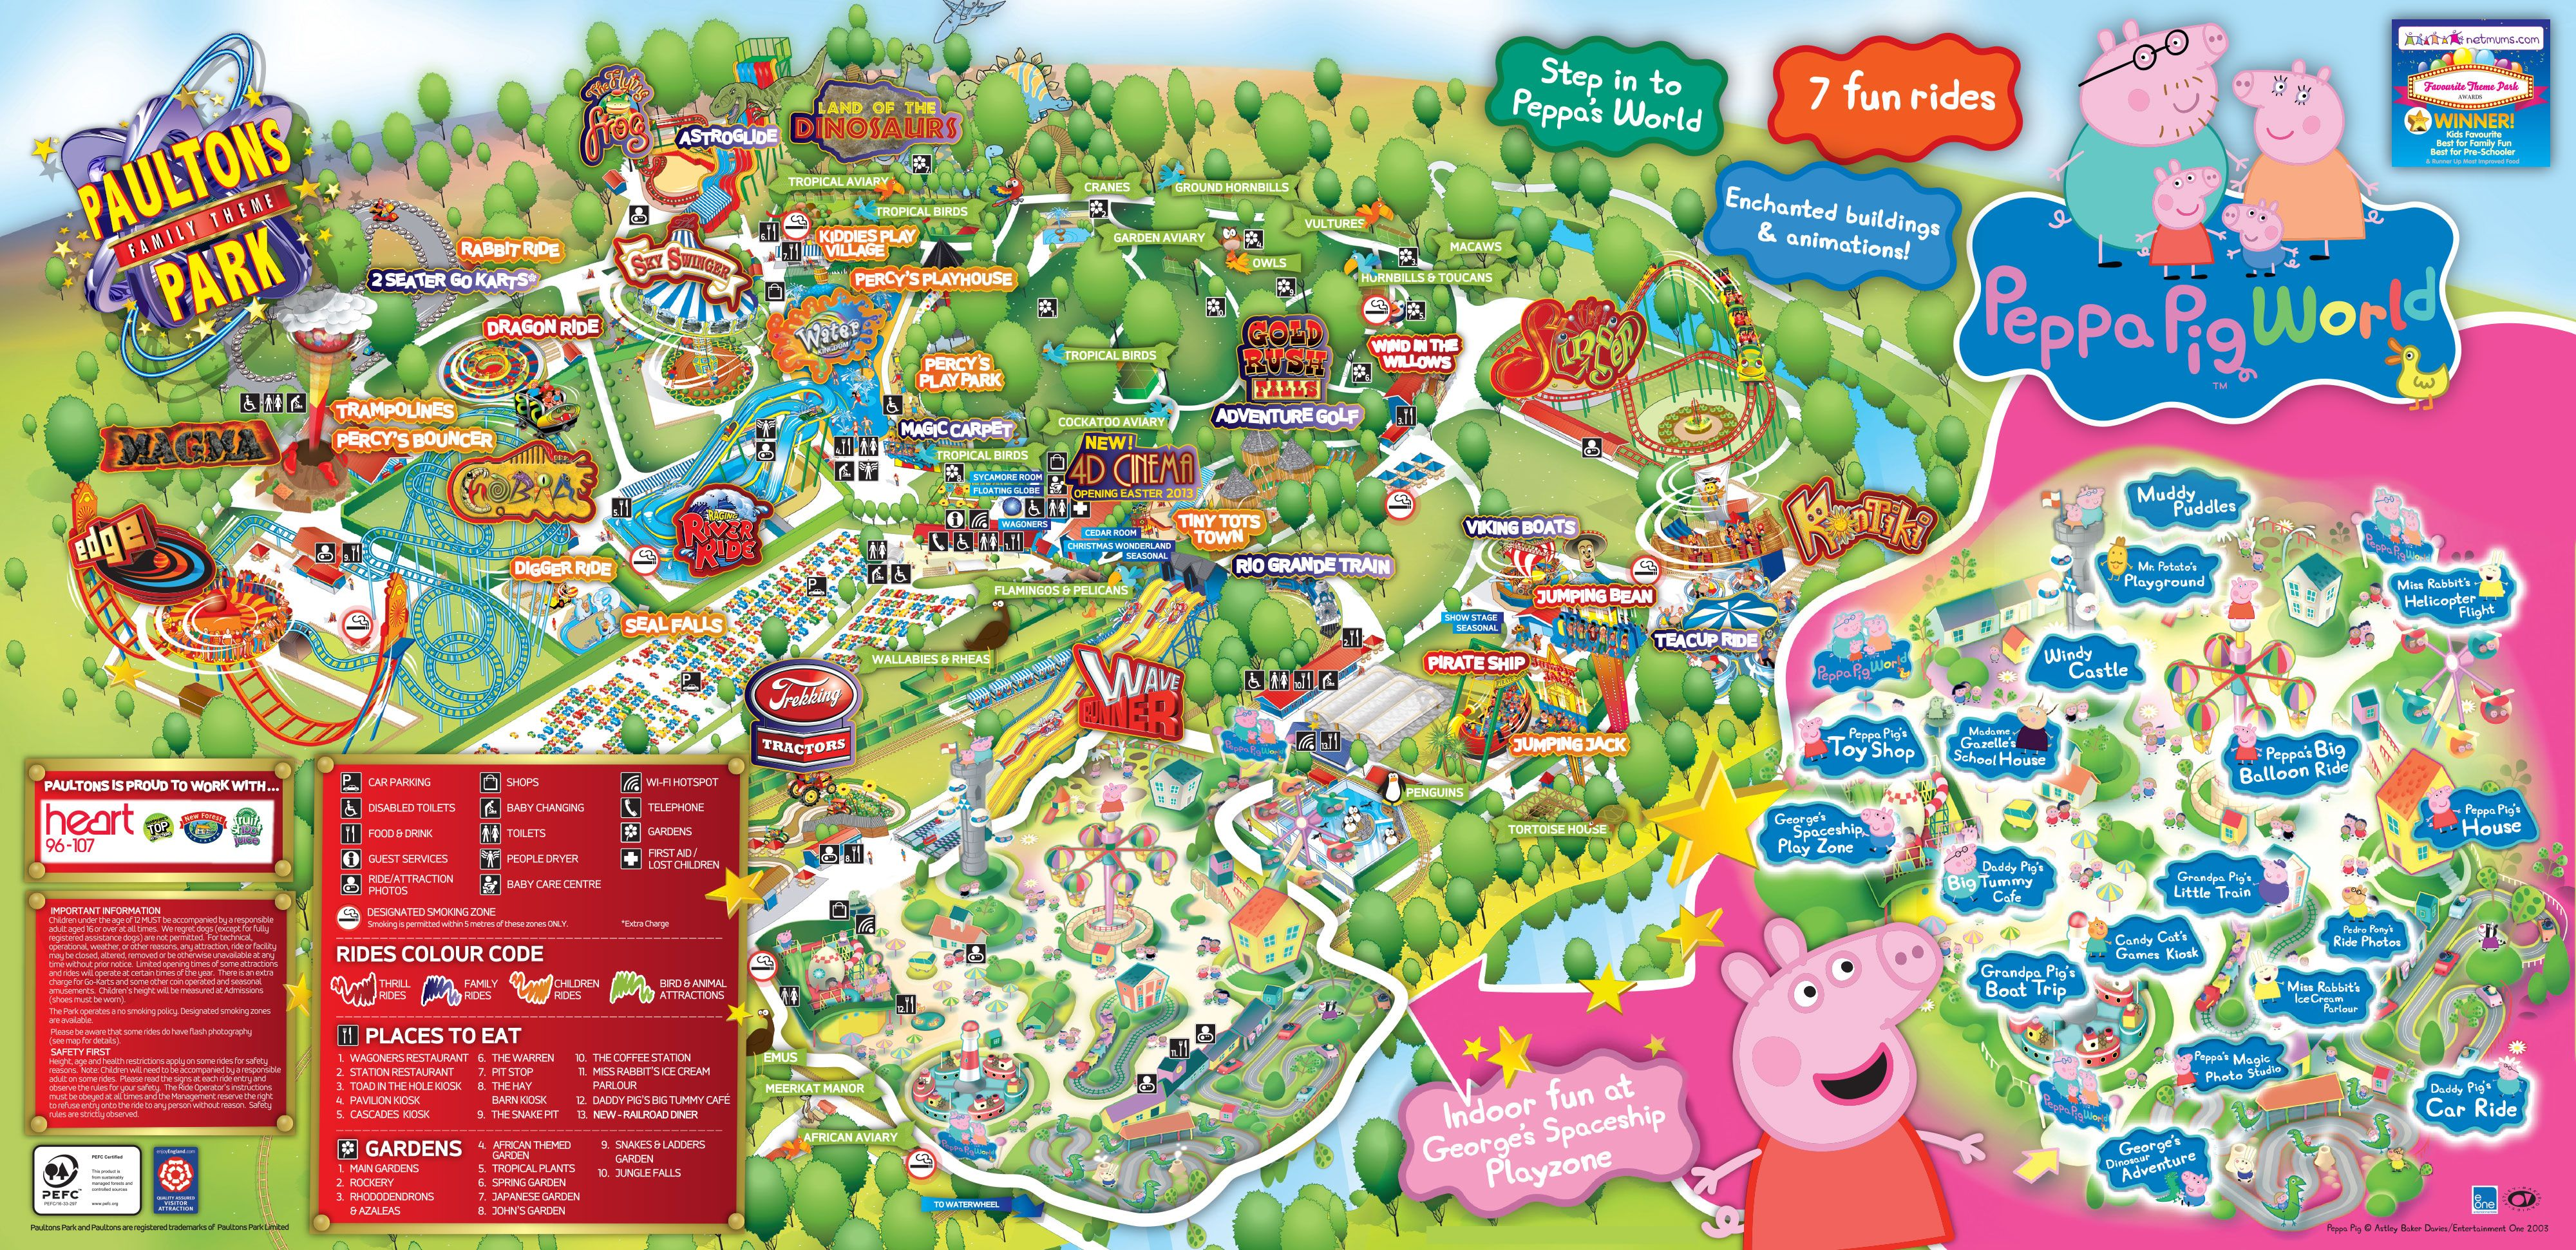 Here is our 2013 Paultons Park Home of Peppa Pig World Park map